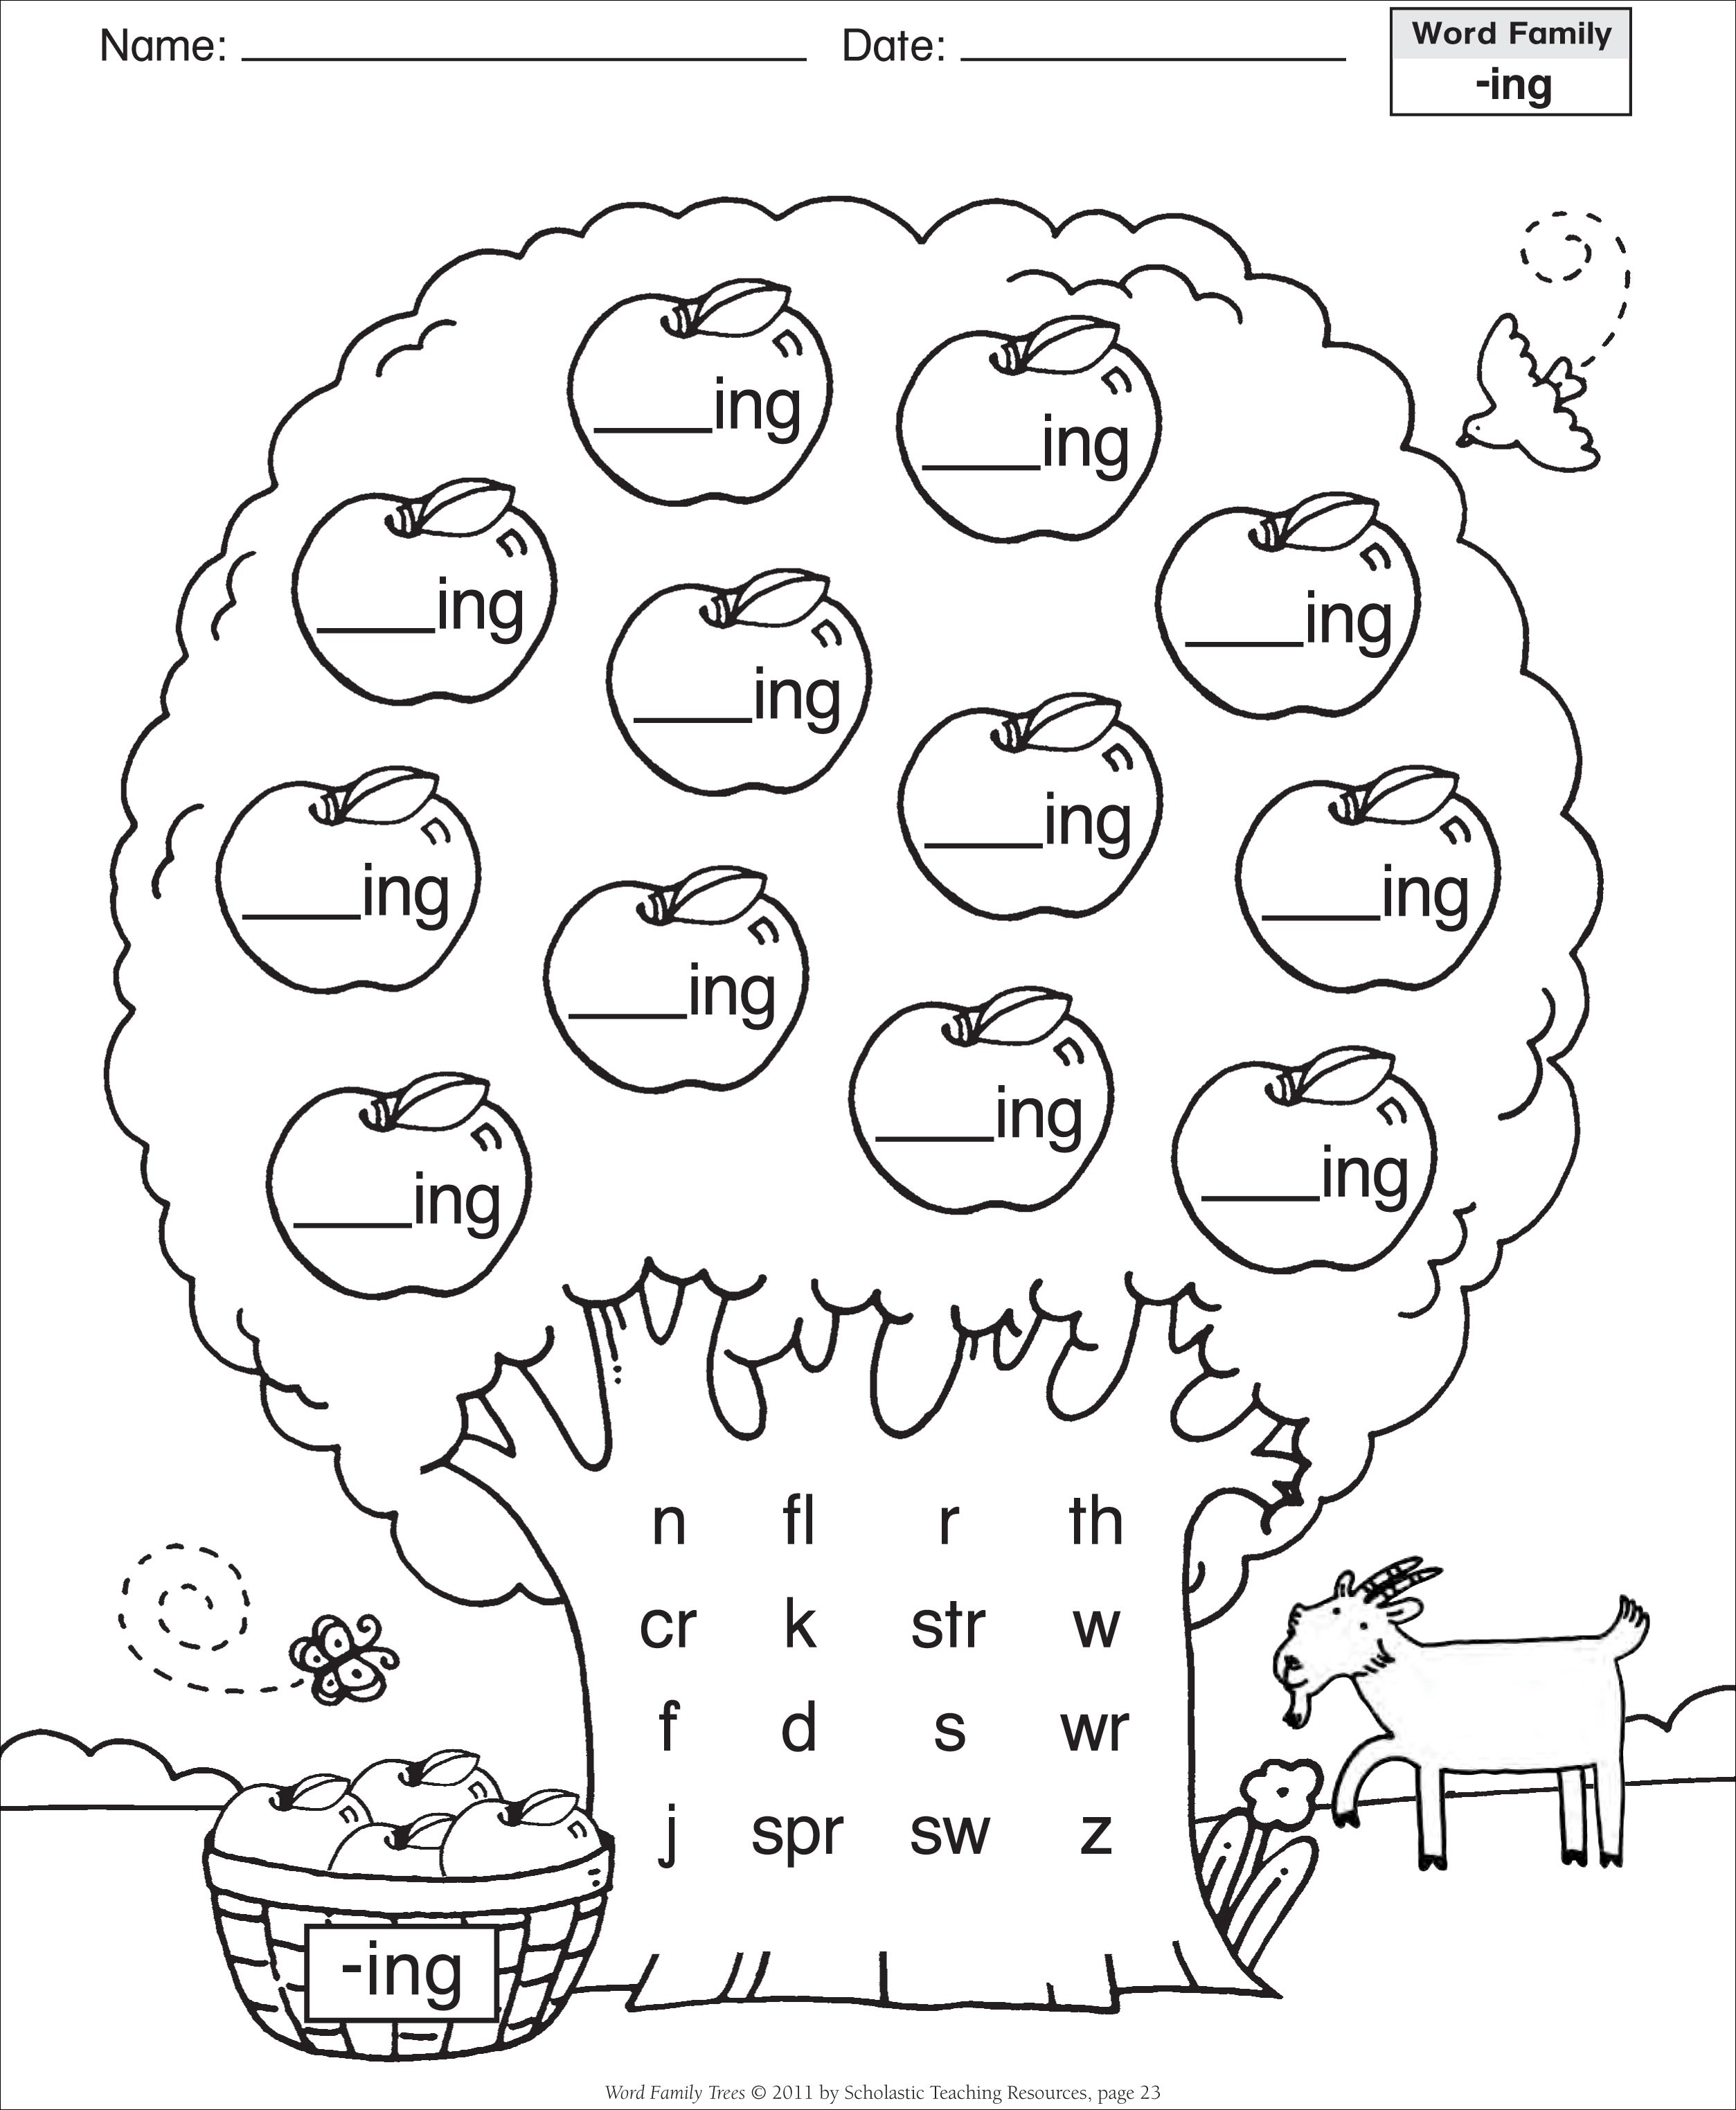 Printable Word Family Worksheets : Best images of ing word family printables